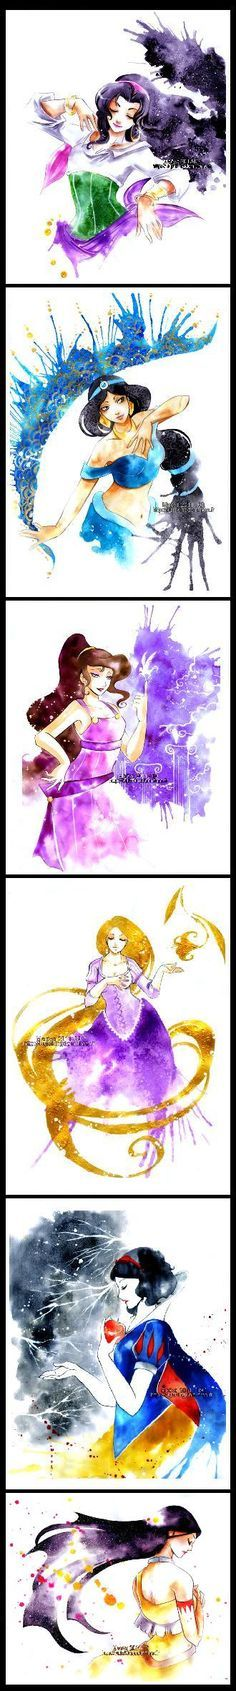 More Disney princesses from DeviantArt. Beautiful illustrations